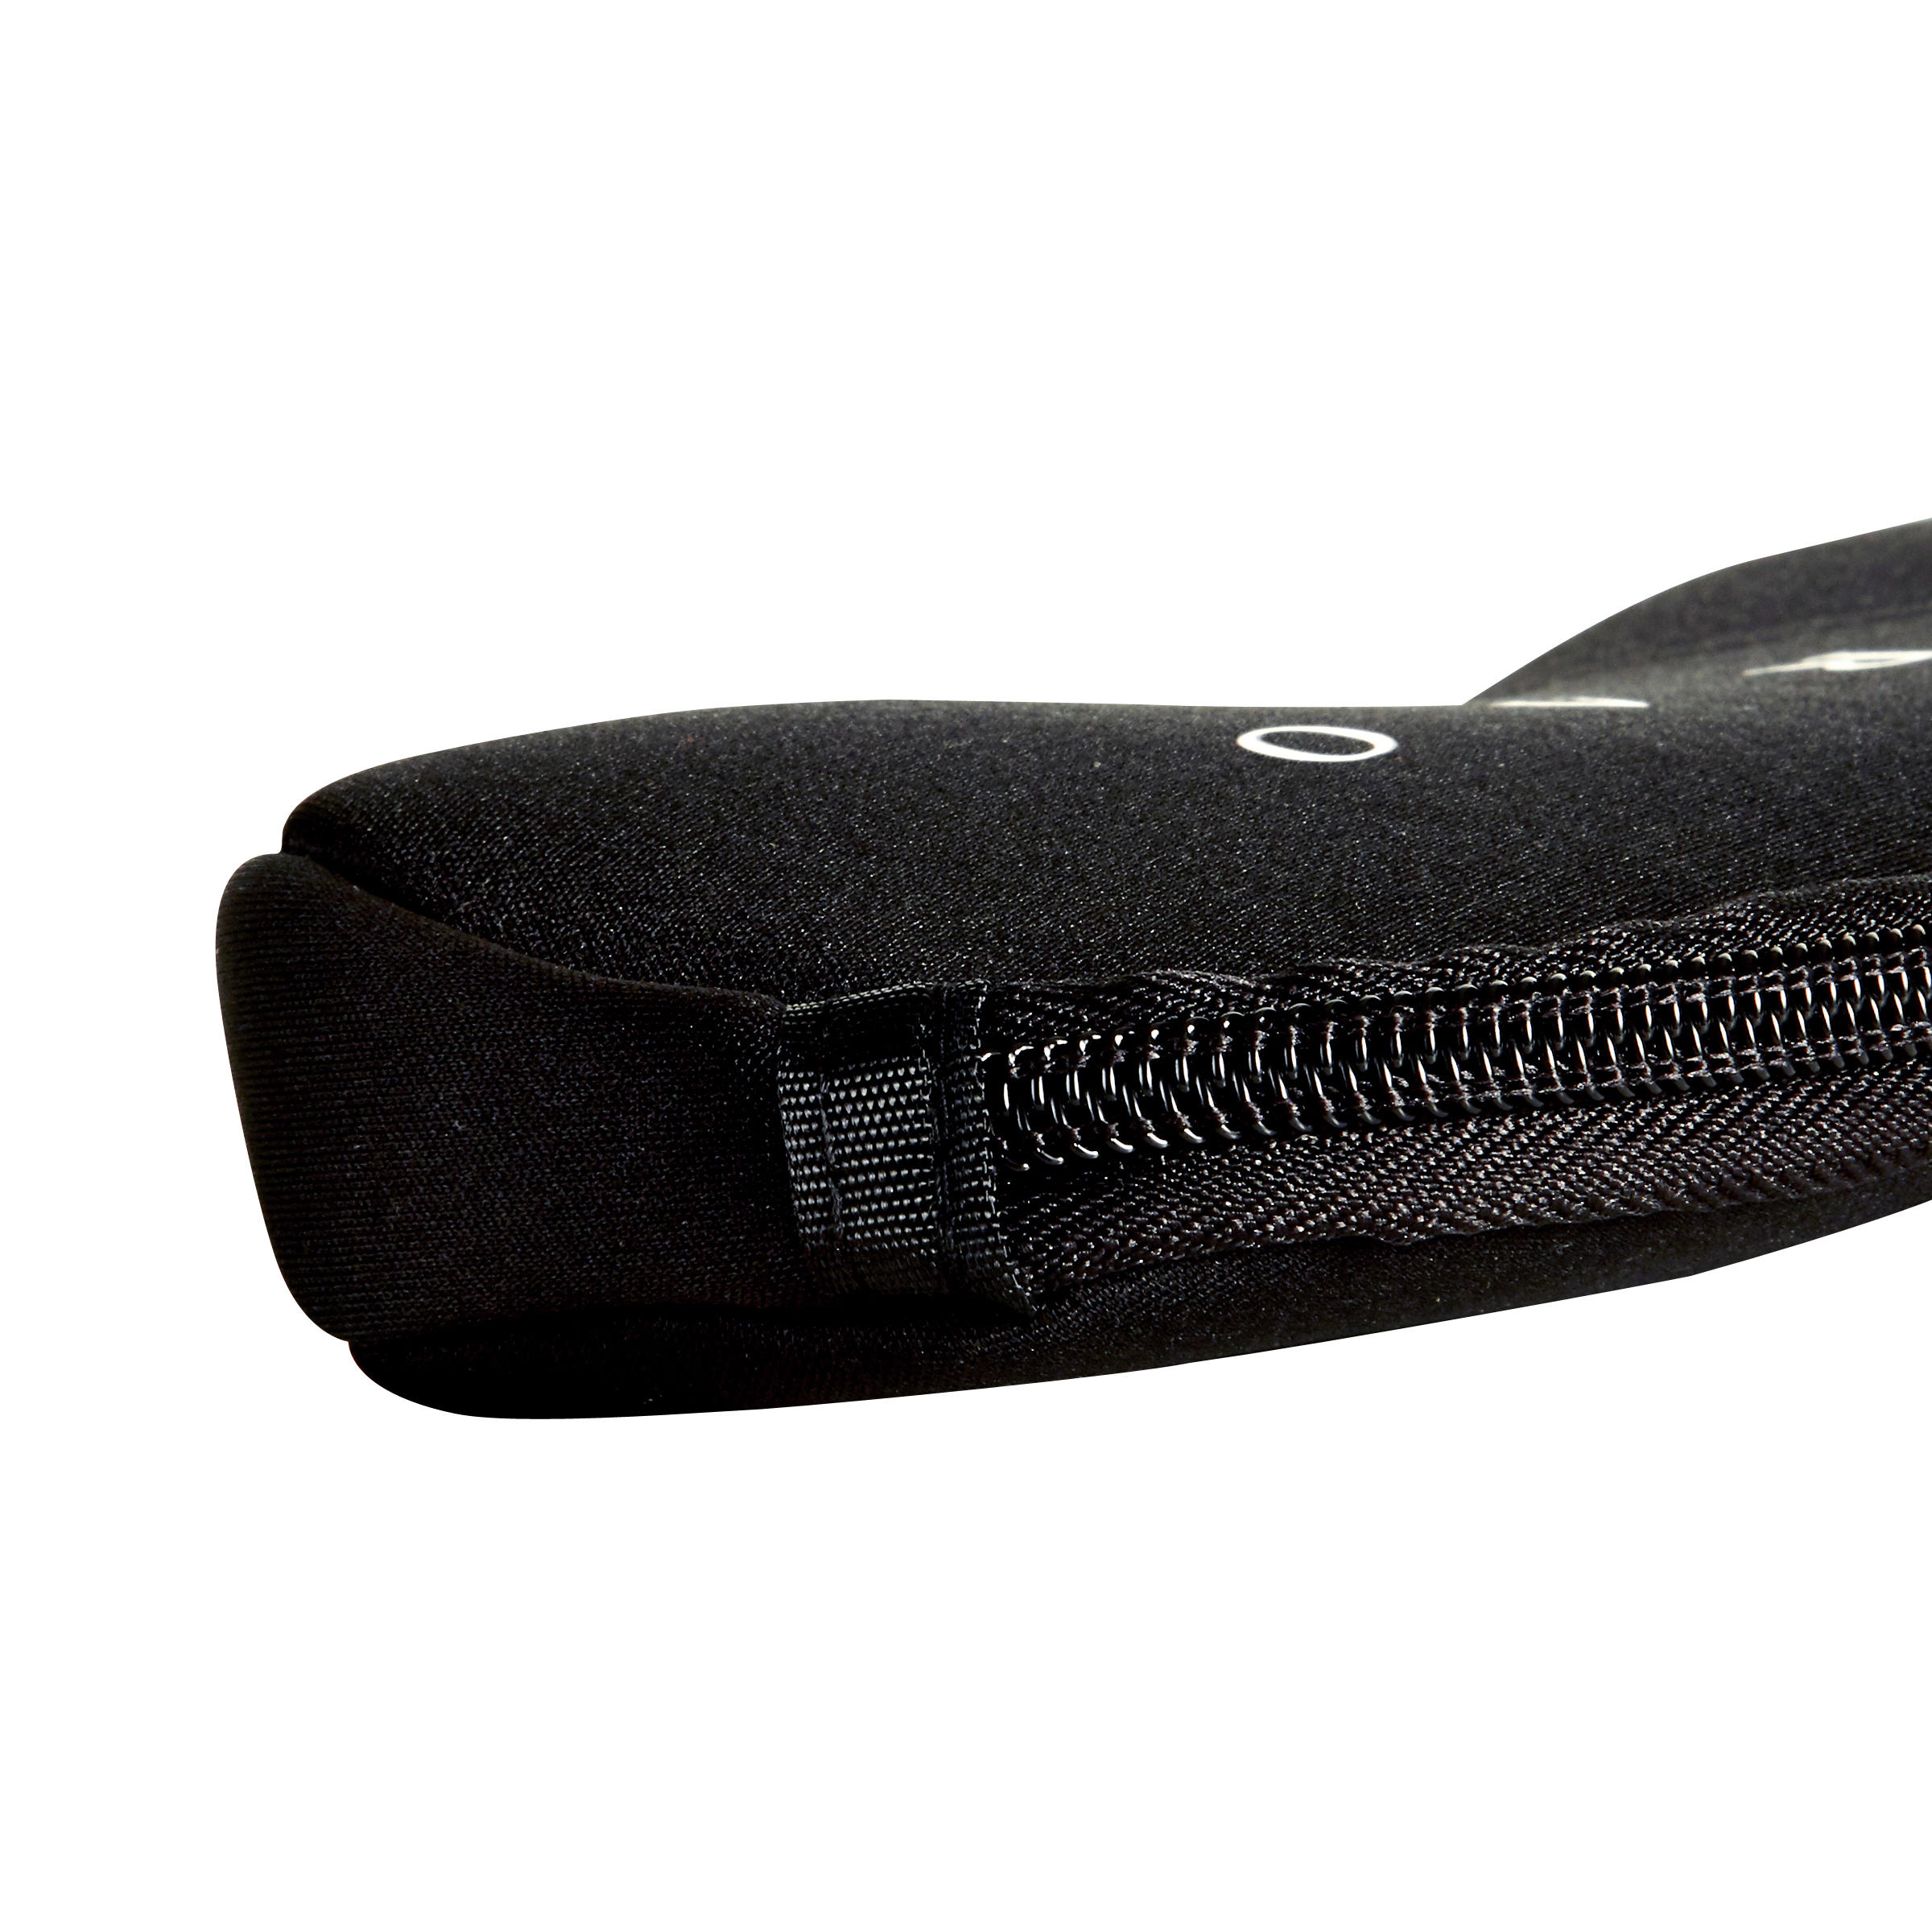 Semi-Rigid Neoprene Case For Glasses CASE 500 S - Black